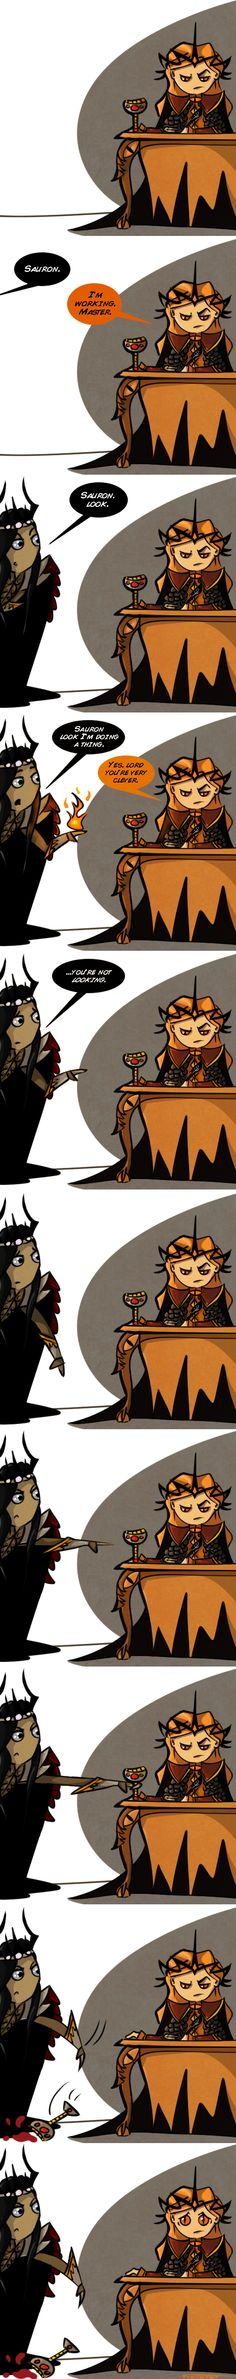 Sauron was evil even as a pupil of Melkor. So I guess Melkor had to show him what's what.